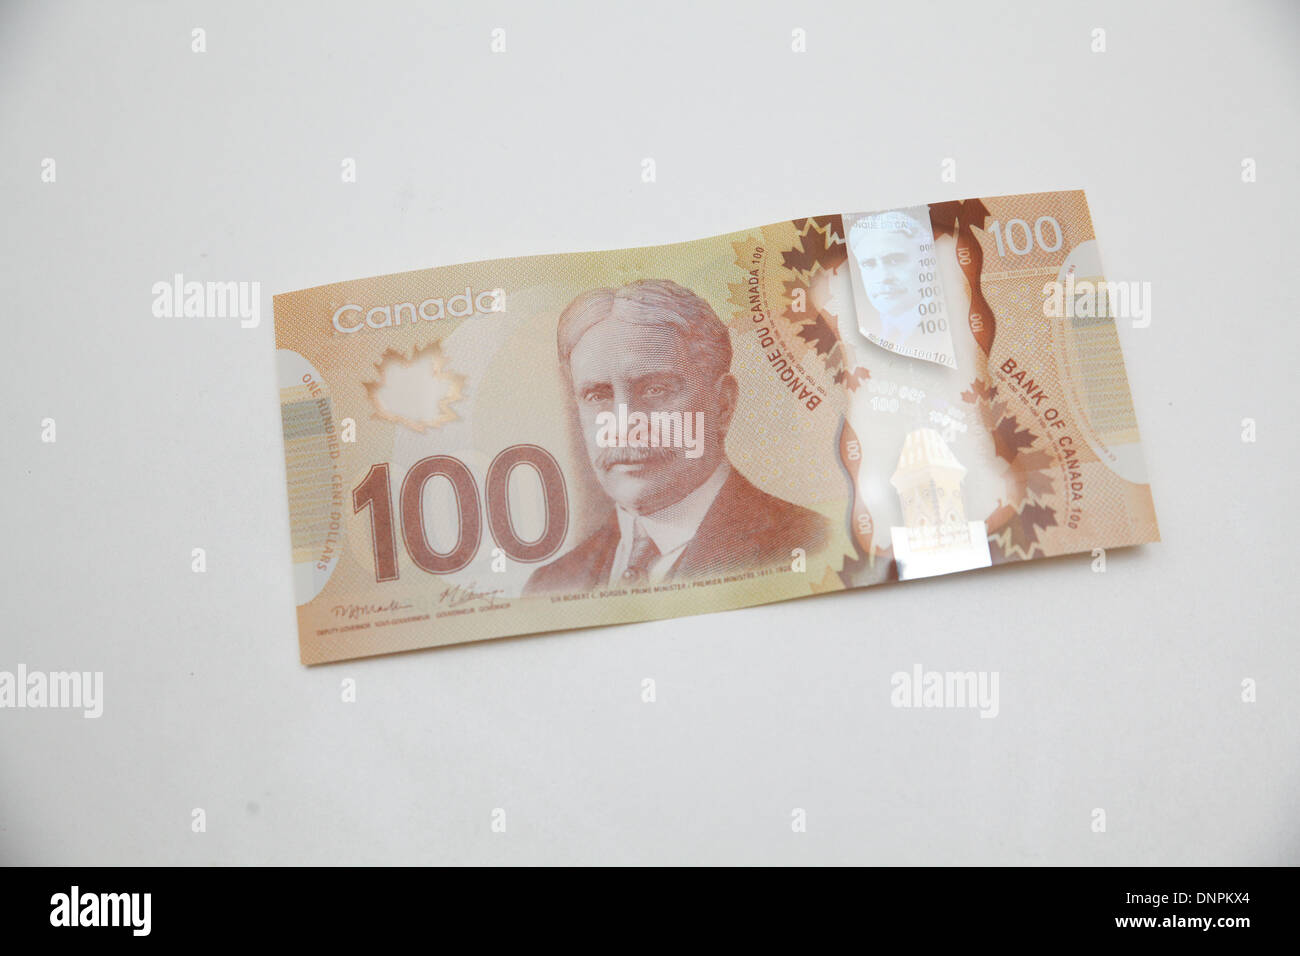 One Canadian hundred dollar bill - Stock Image